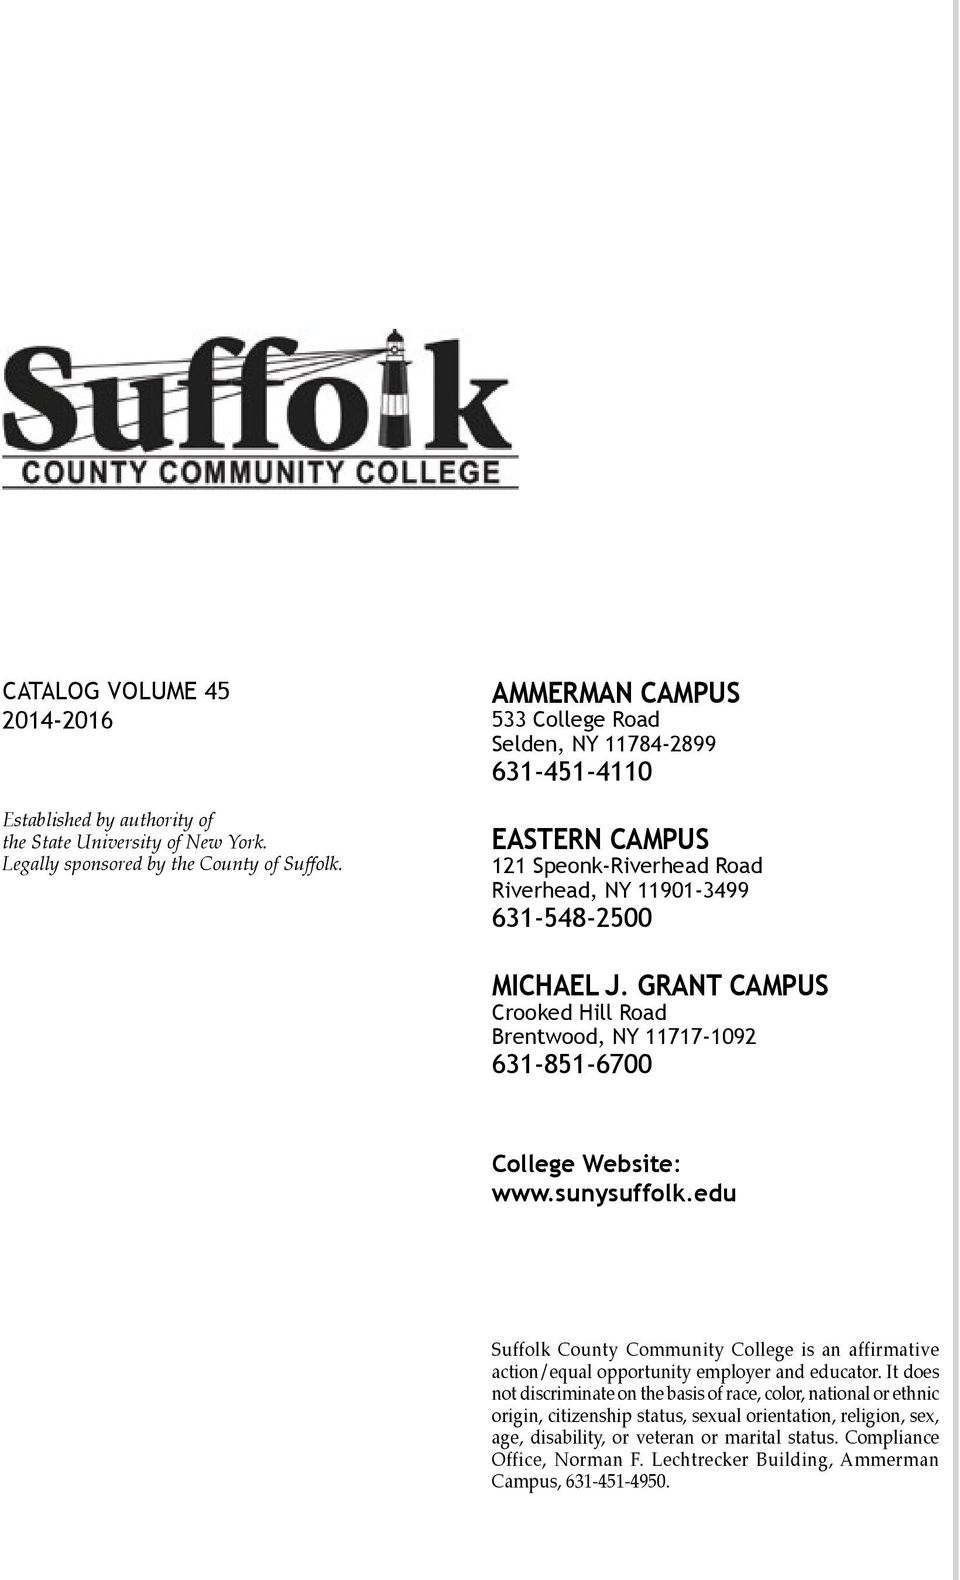 GRANT CAMPUS Crooked Hill Road Brentwood, NY 11717-1092 631-851-6700 College Website: www.sunysuffolk.